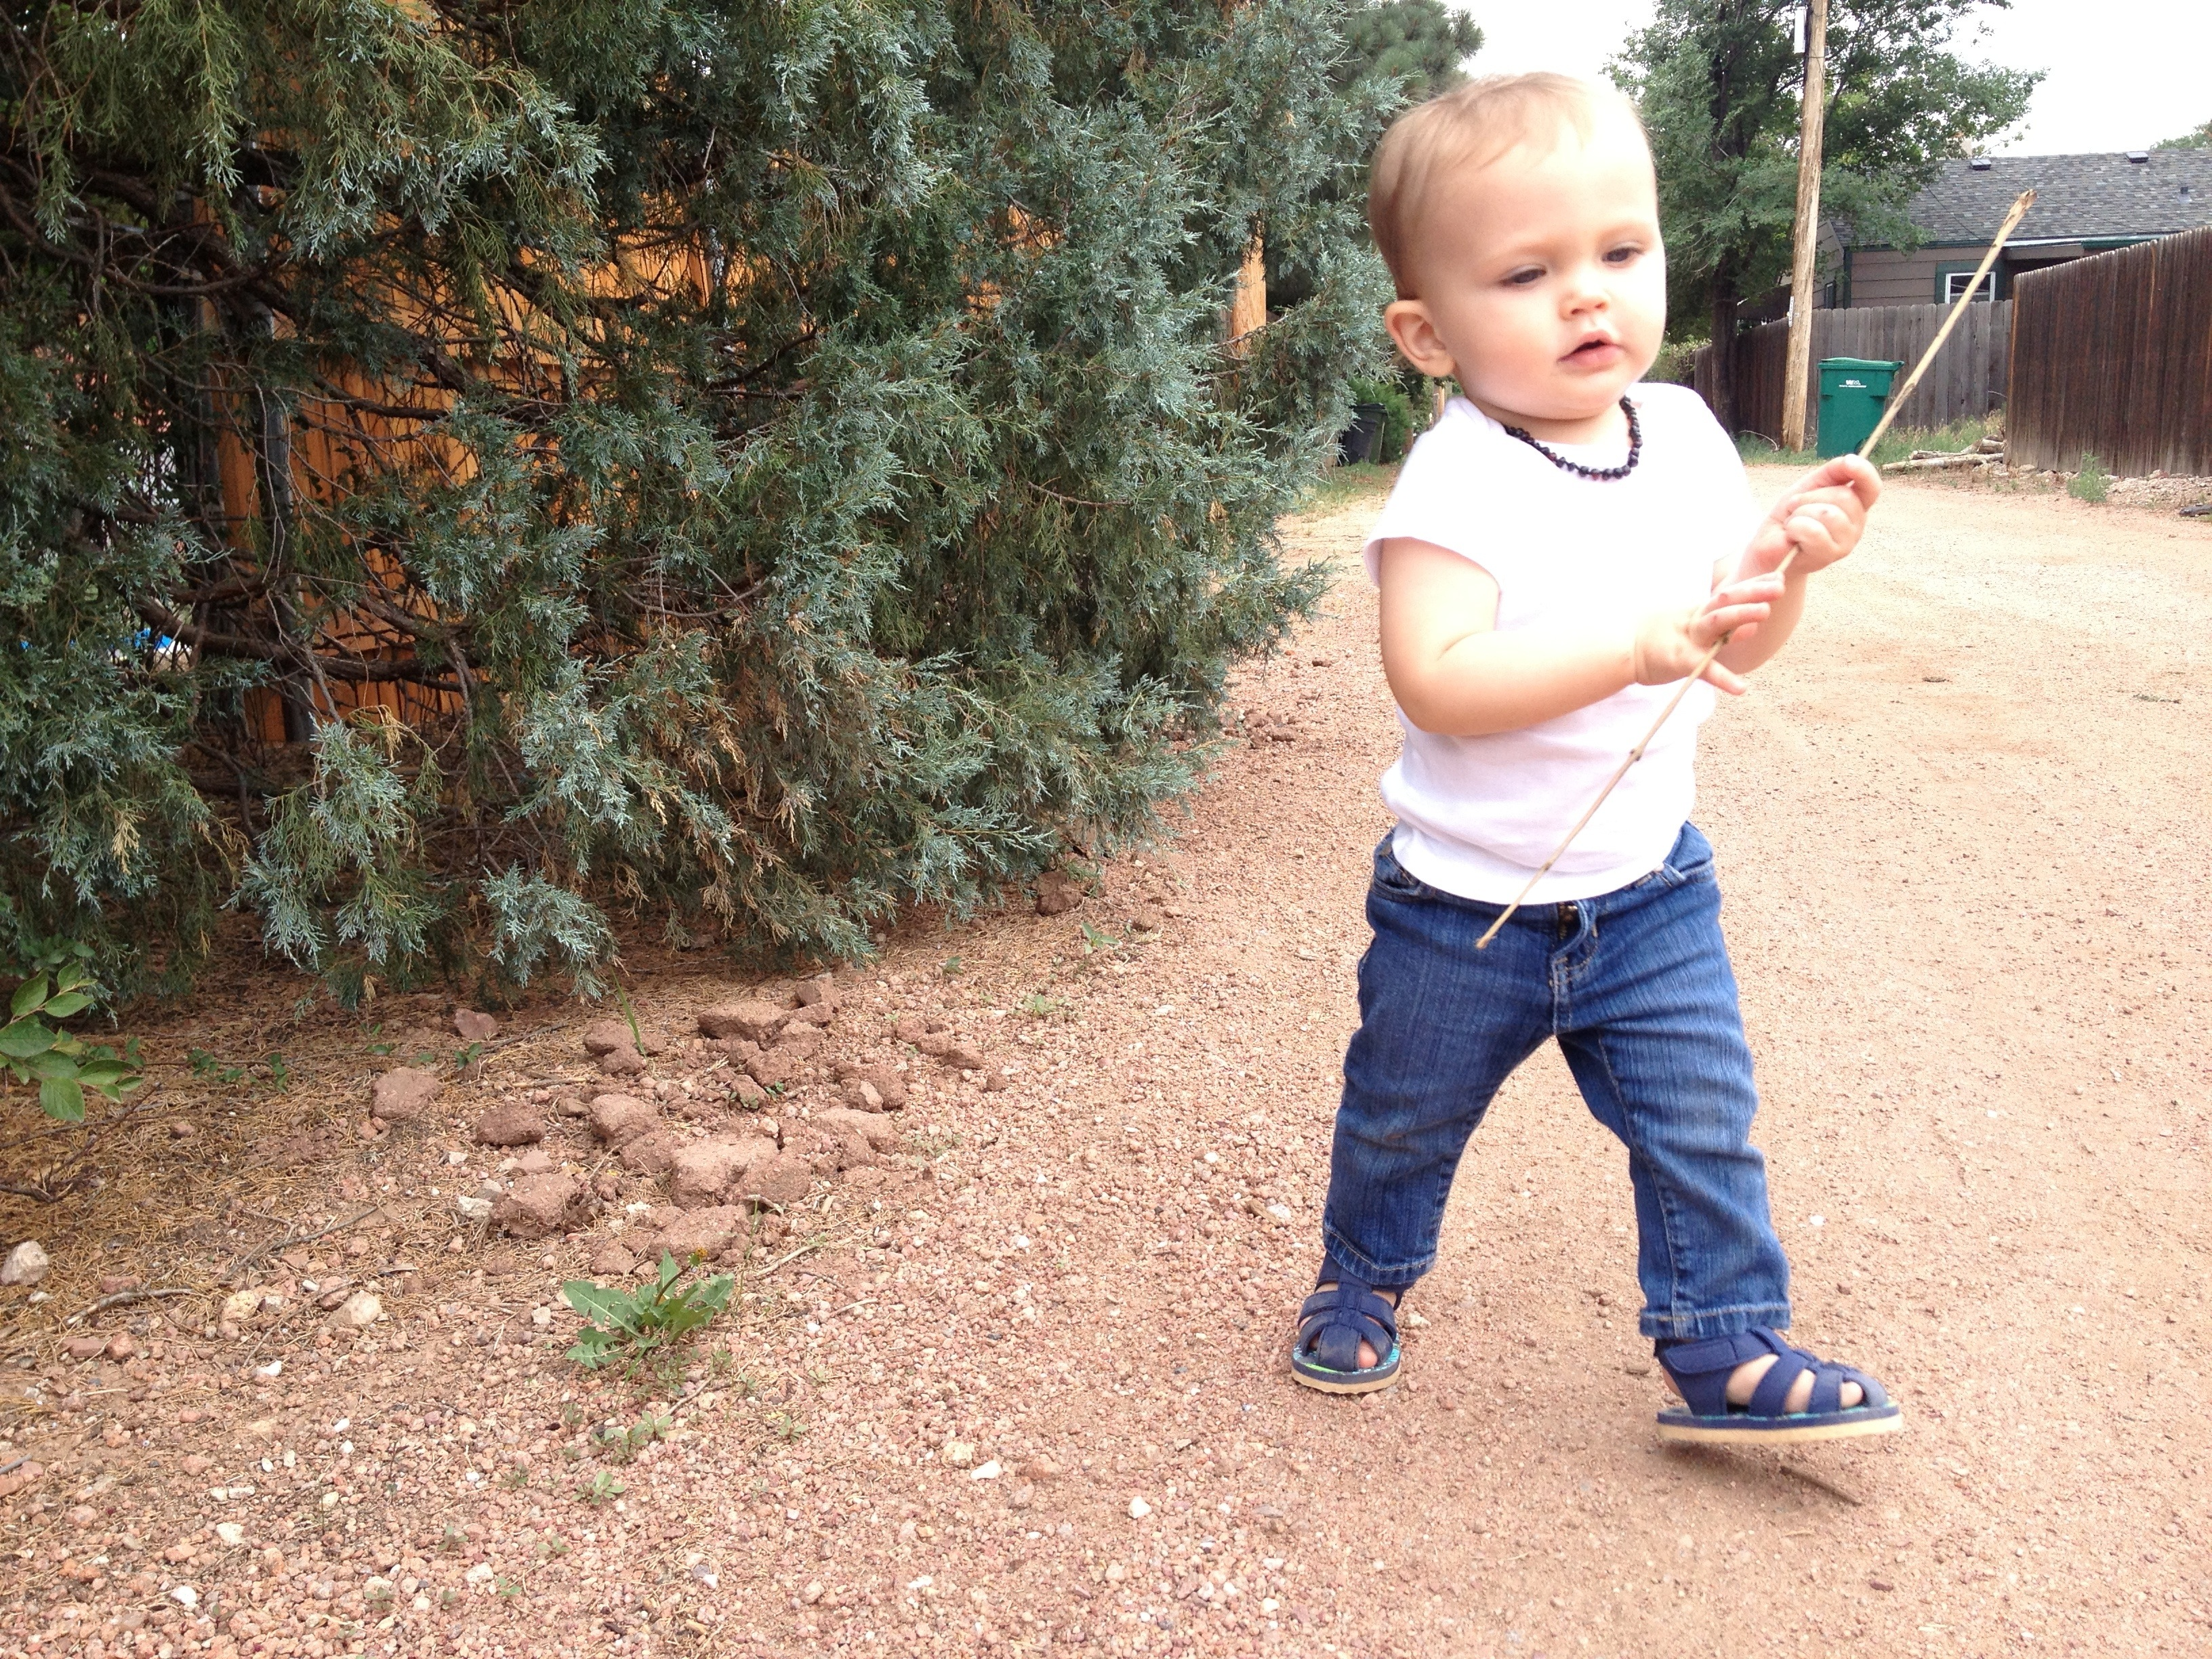 Felix walks down the alley with his stick